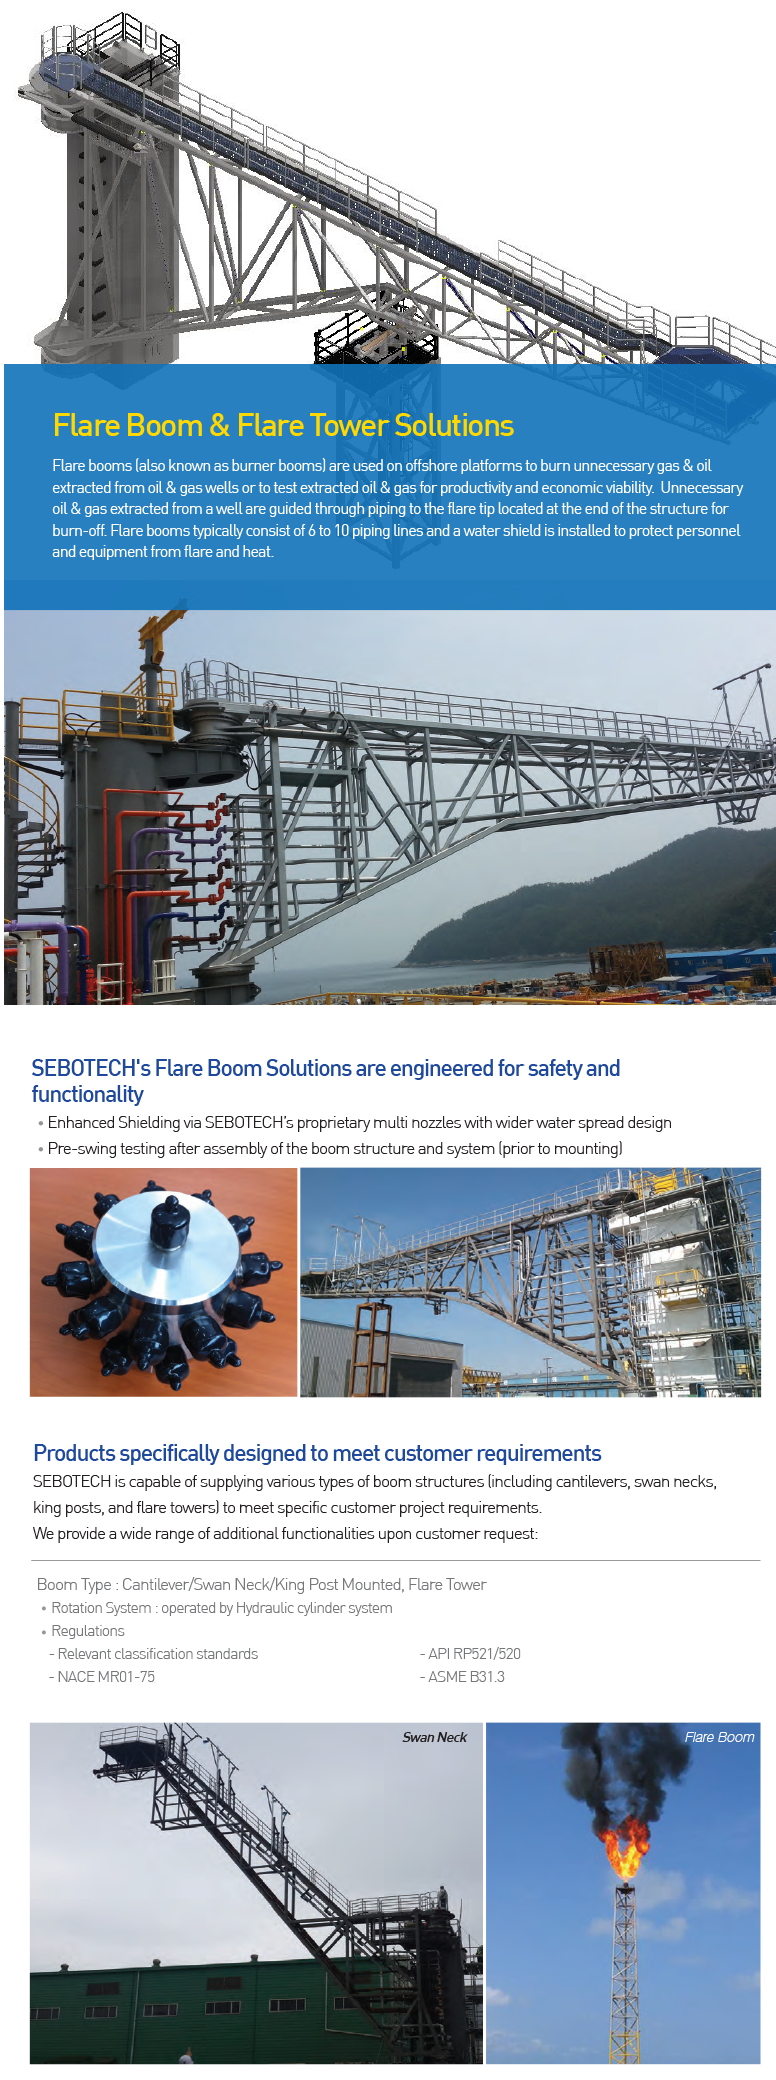 SEBOTECH Flare Boom & Flare Tower Solutions